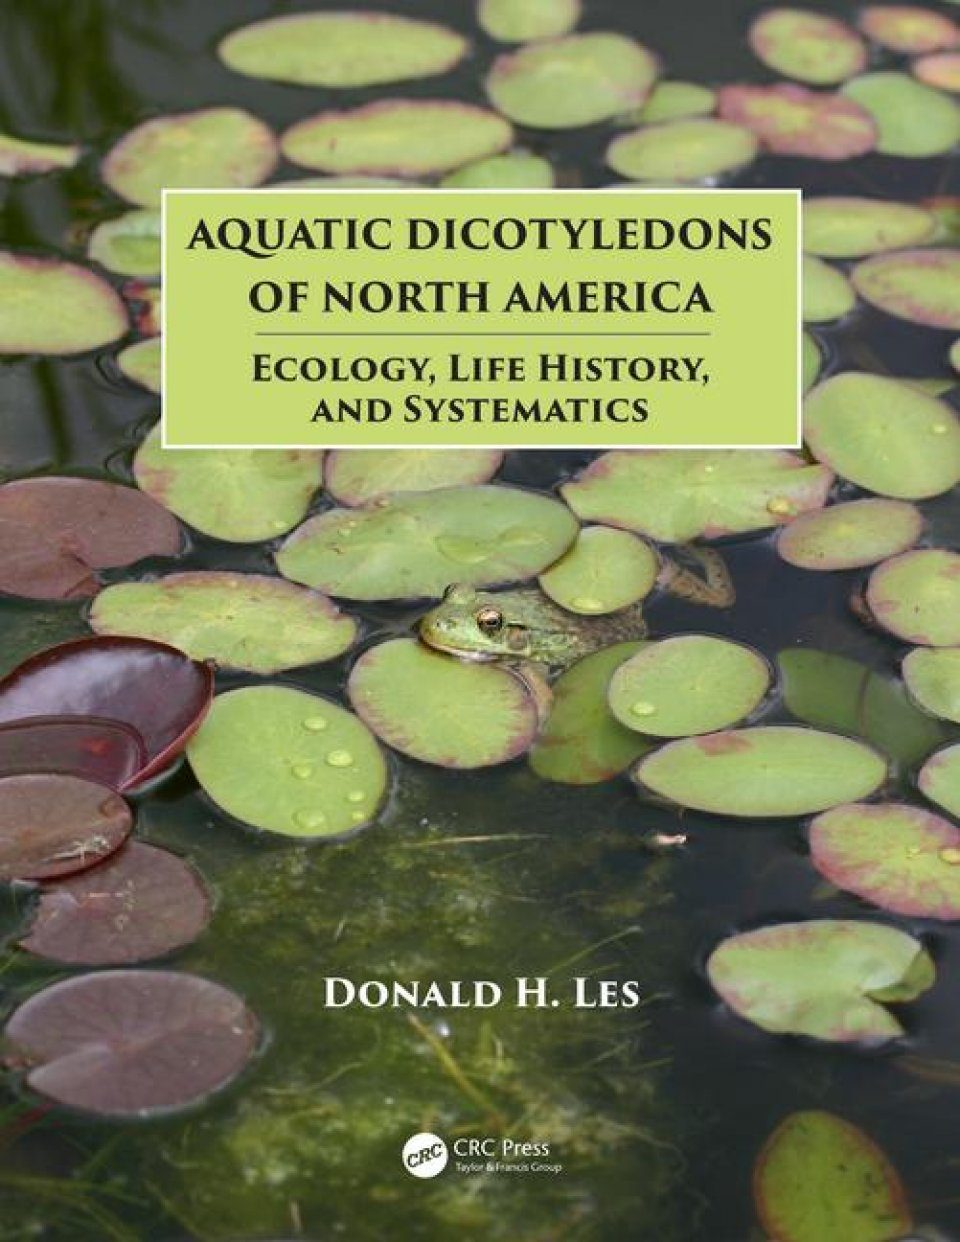 Aquatic Dicotyledons of North America